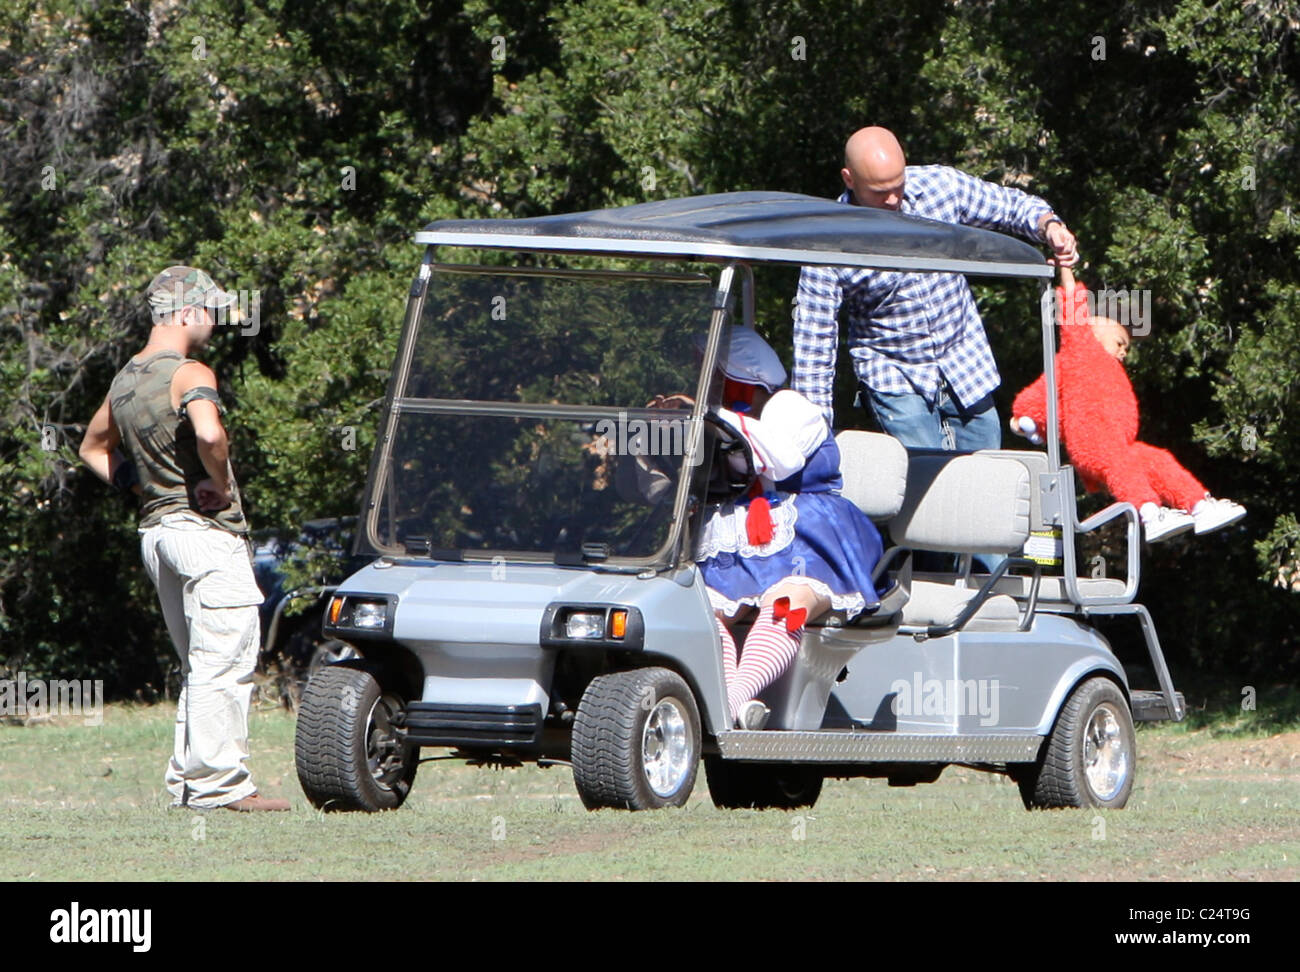 stephen belafonte and angel iris murphy on a golf cart at the 2009 bony pony ranch halloween carnival hosted by drfrank ryan